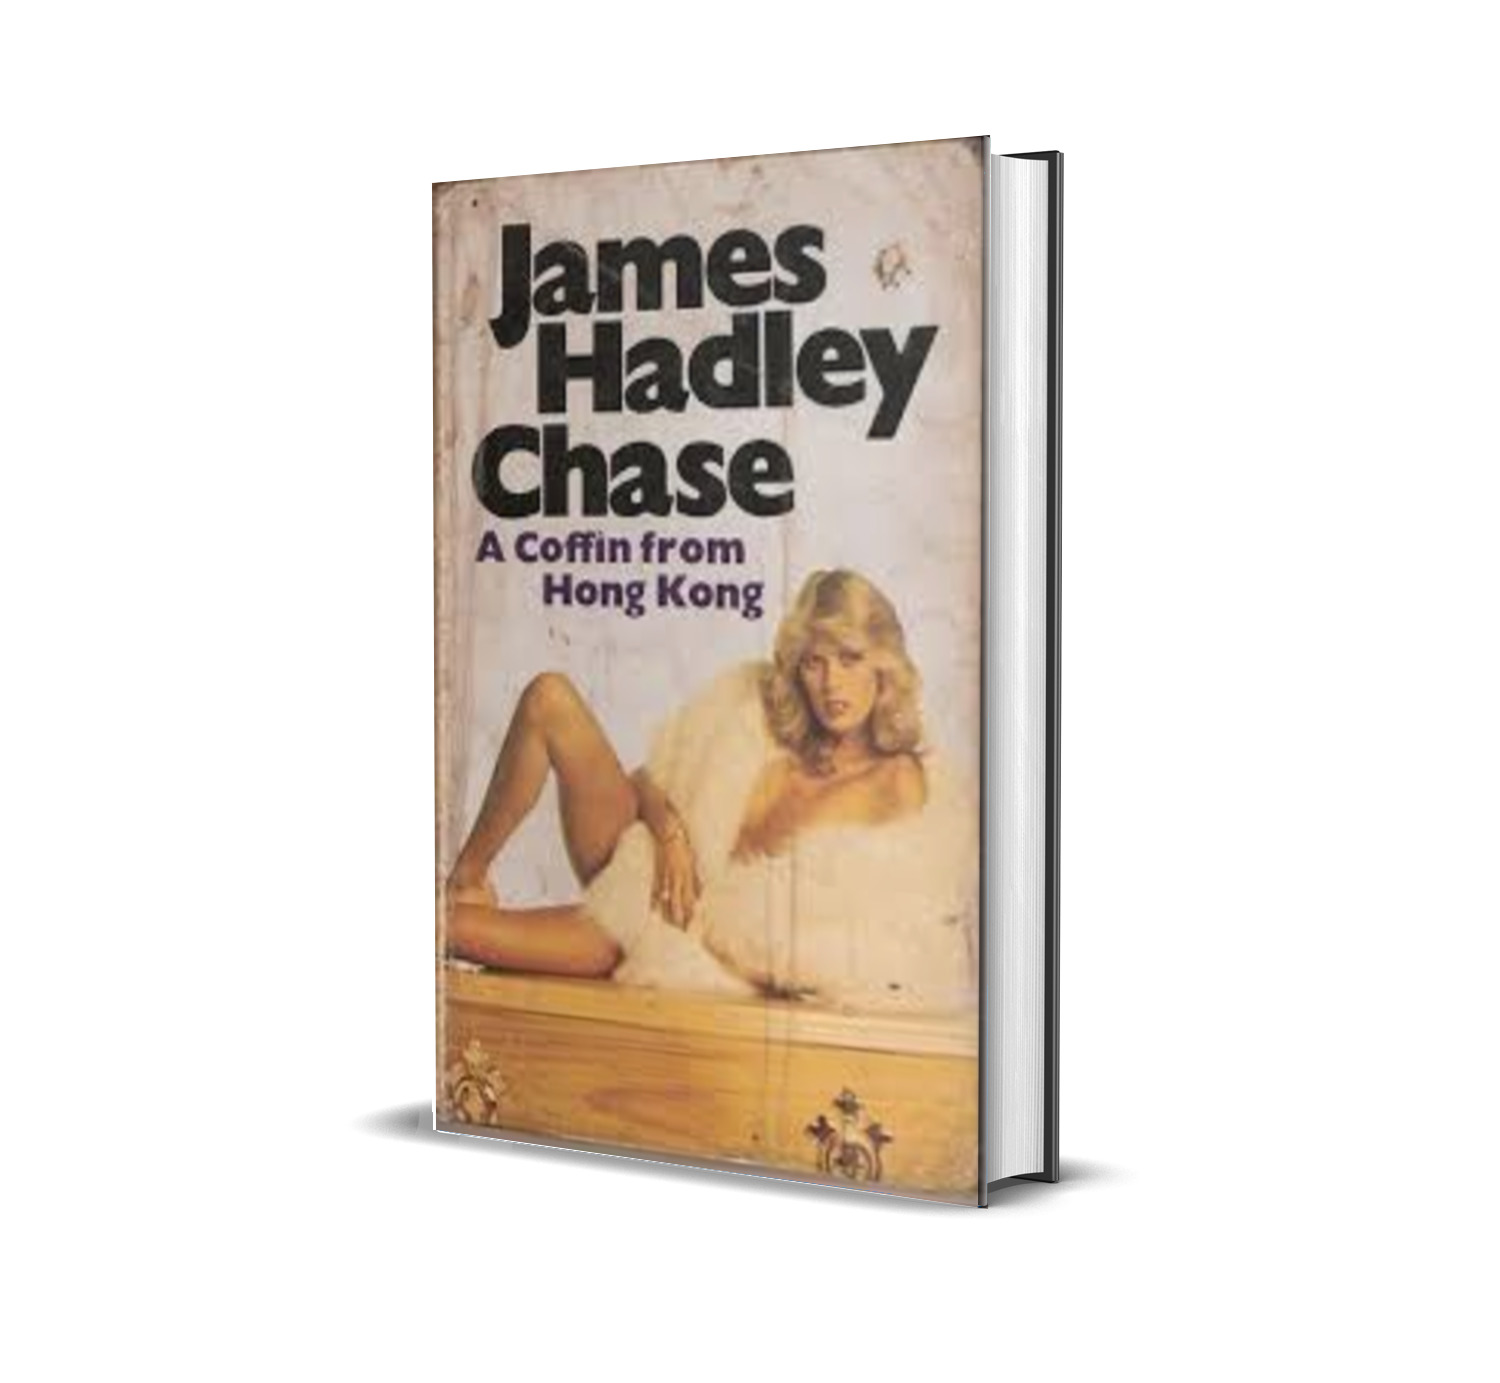 A coffin from hong kong- james hadley chase